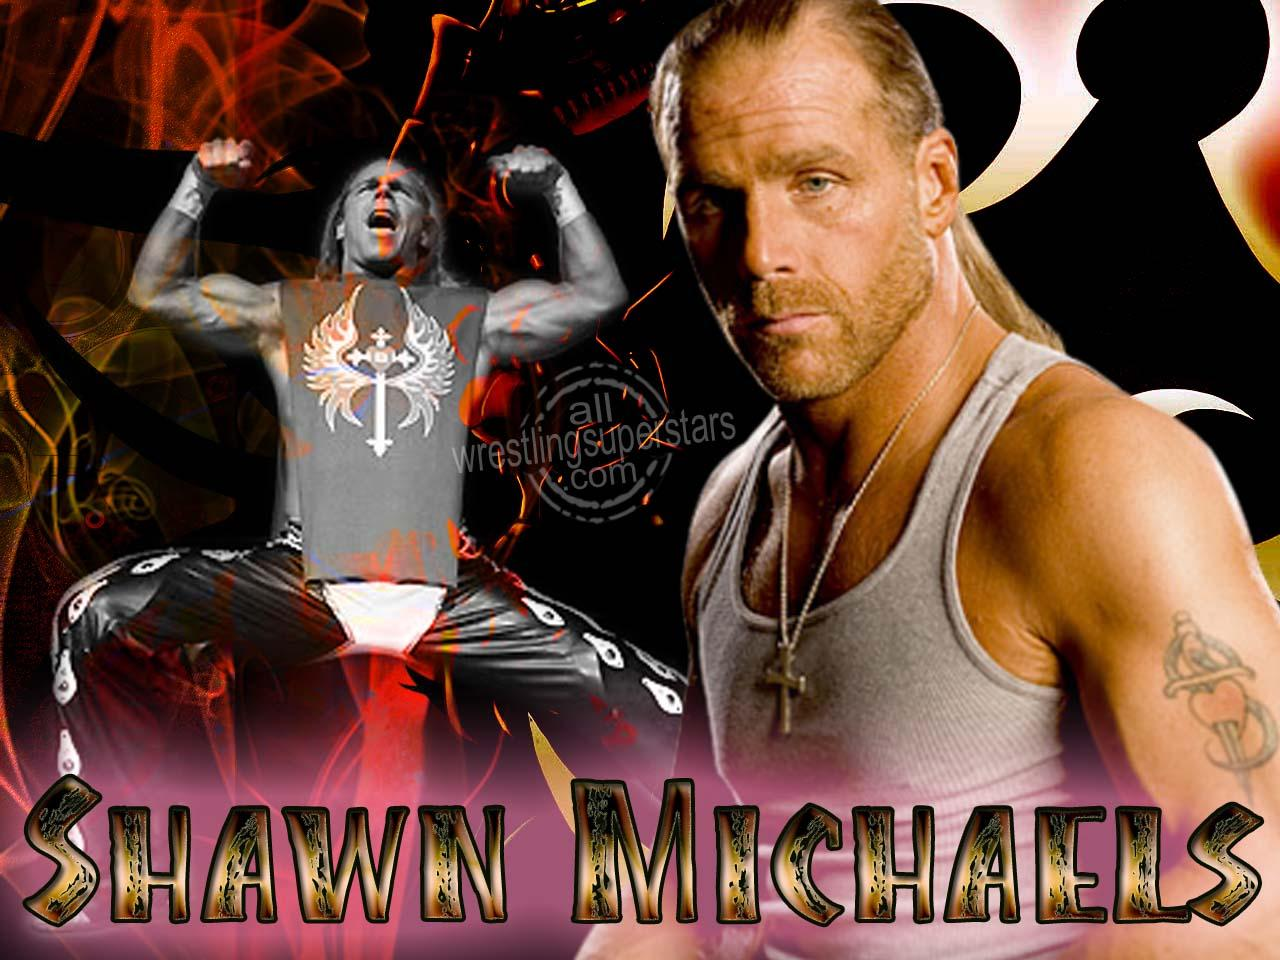 http://2.bp.blogspot.com/-QTasCvFMyc0/TZXFSRyUSLI/AAAAAAAAAh4/79V2oohRb-Q/s1600/wwe-wallpapers-shawn-michaels-5.jpg